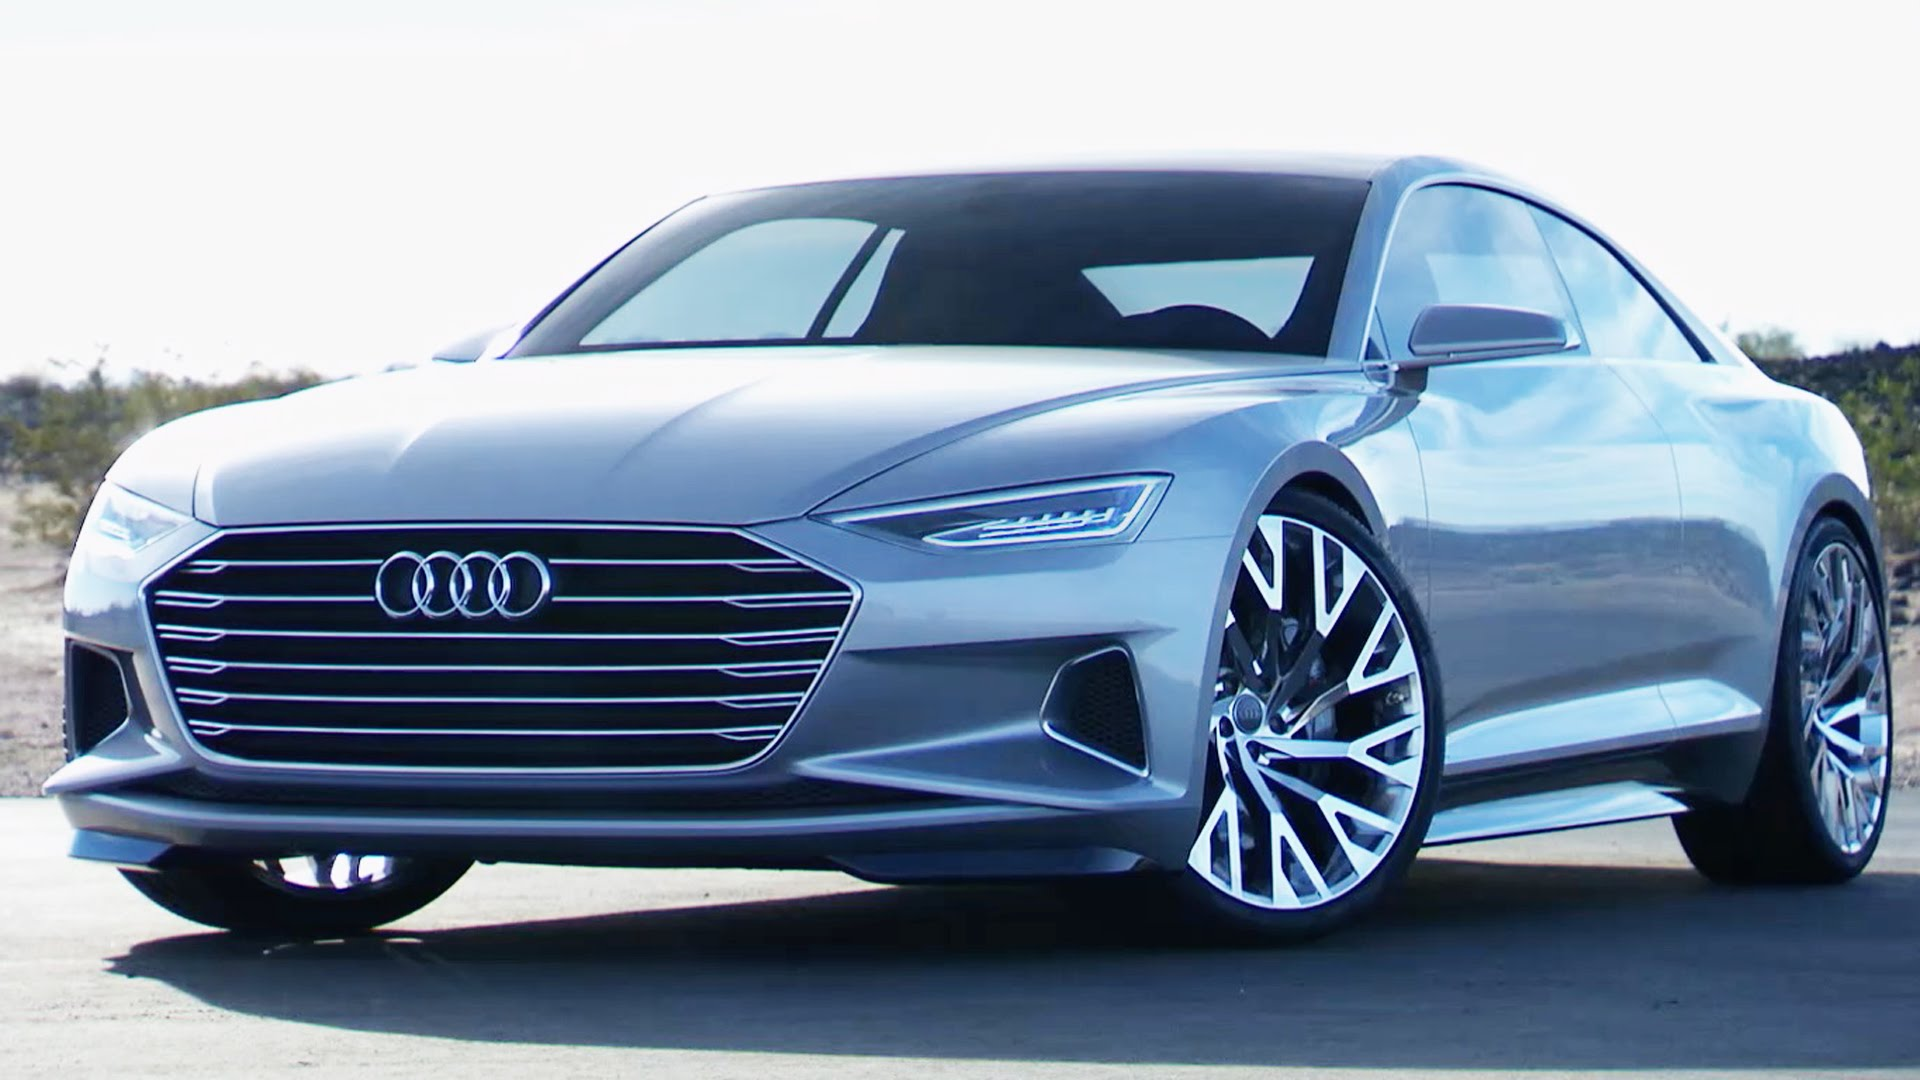 Future Audi A9 The Audi Prologue Concept Design Vbox7 HD Wallpapers Download free images and photos [musssic.tk]